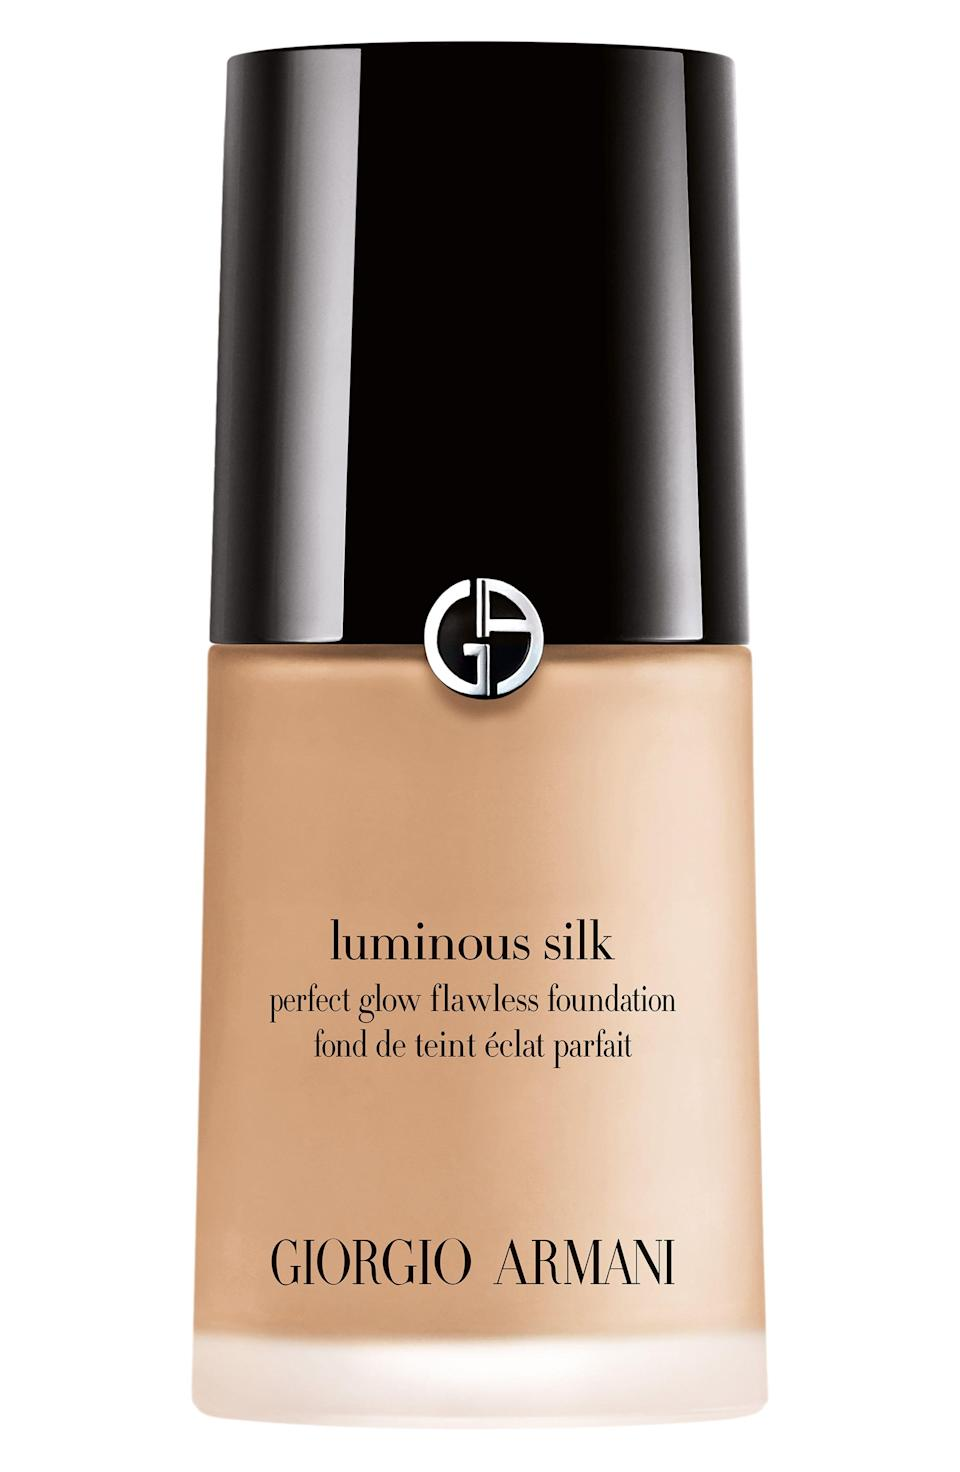 """<p><strong>GIORGIO ARMANI</strong></p><p>nordstrom.com</p><p><a href=""""https://go.redirectingat.com?id=74968X1596630&url=https%3A%2F%2Fwww.nordstrom.com%2Fs%2Fgiorgio-armani-luminous-silk-perfect-glow-flawless-oil-free-foundation%2F2853110&sref=https%3A%2F%2Fwww.elle.com%2Fbeauty%2Fg35951728%2Fnordstrom-beauty-sale%2F"""" rel=""""nofollow noopener"""" target=""""_blank"""" data-ylk=""""slk:Shop Now"""" class=""""link rapid-noclick-resp"""">Shop Now</a></p><p><strong><del>$44 </del>$37.40 (15% off) </strong></p>"""